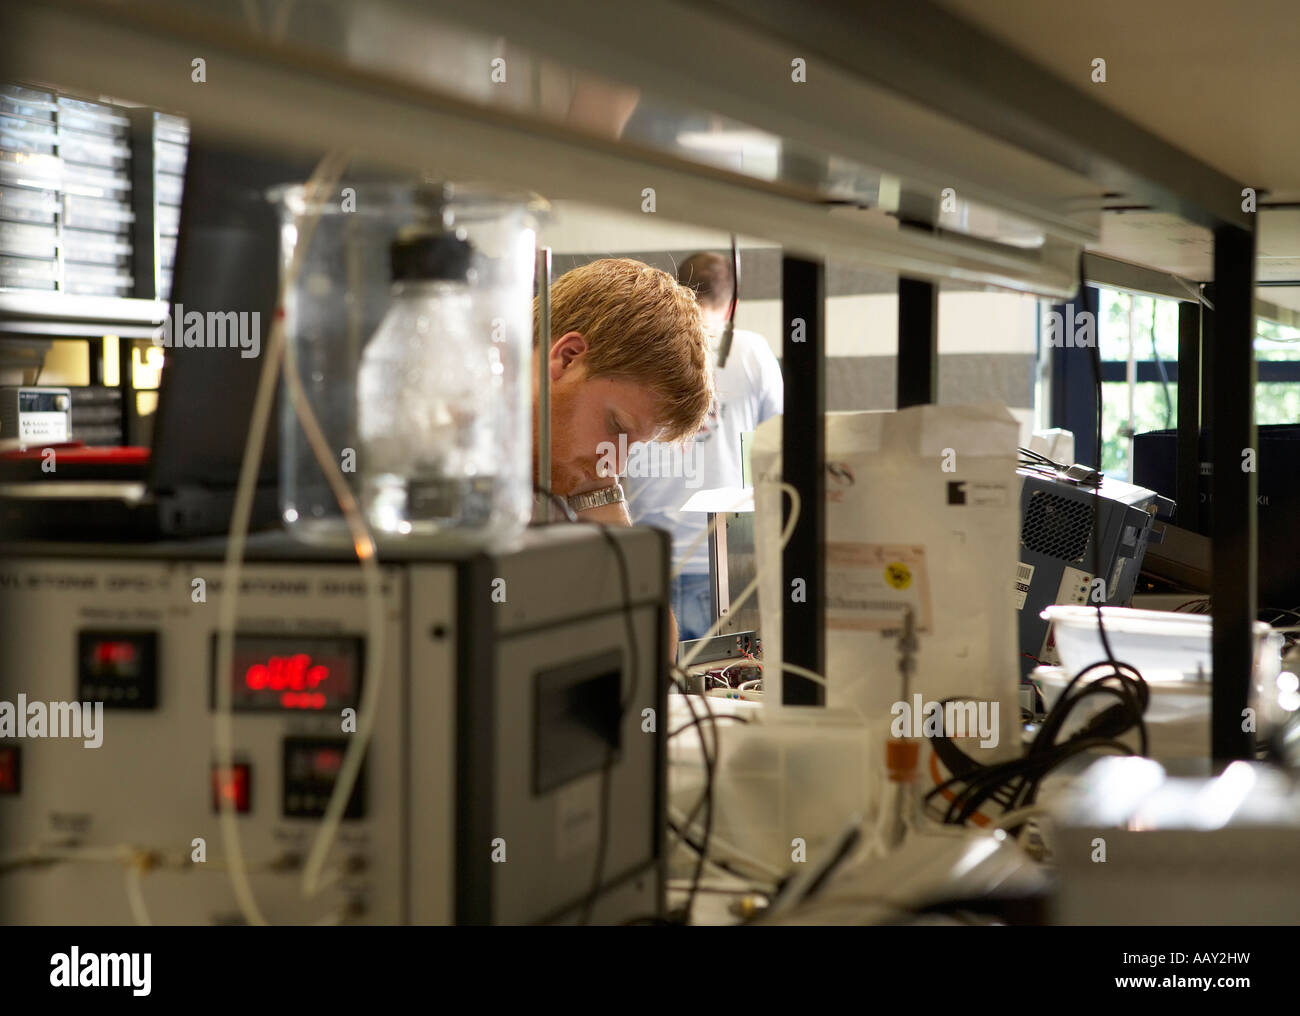 Scientist working in a laboratory - Stock Image